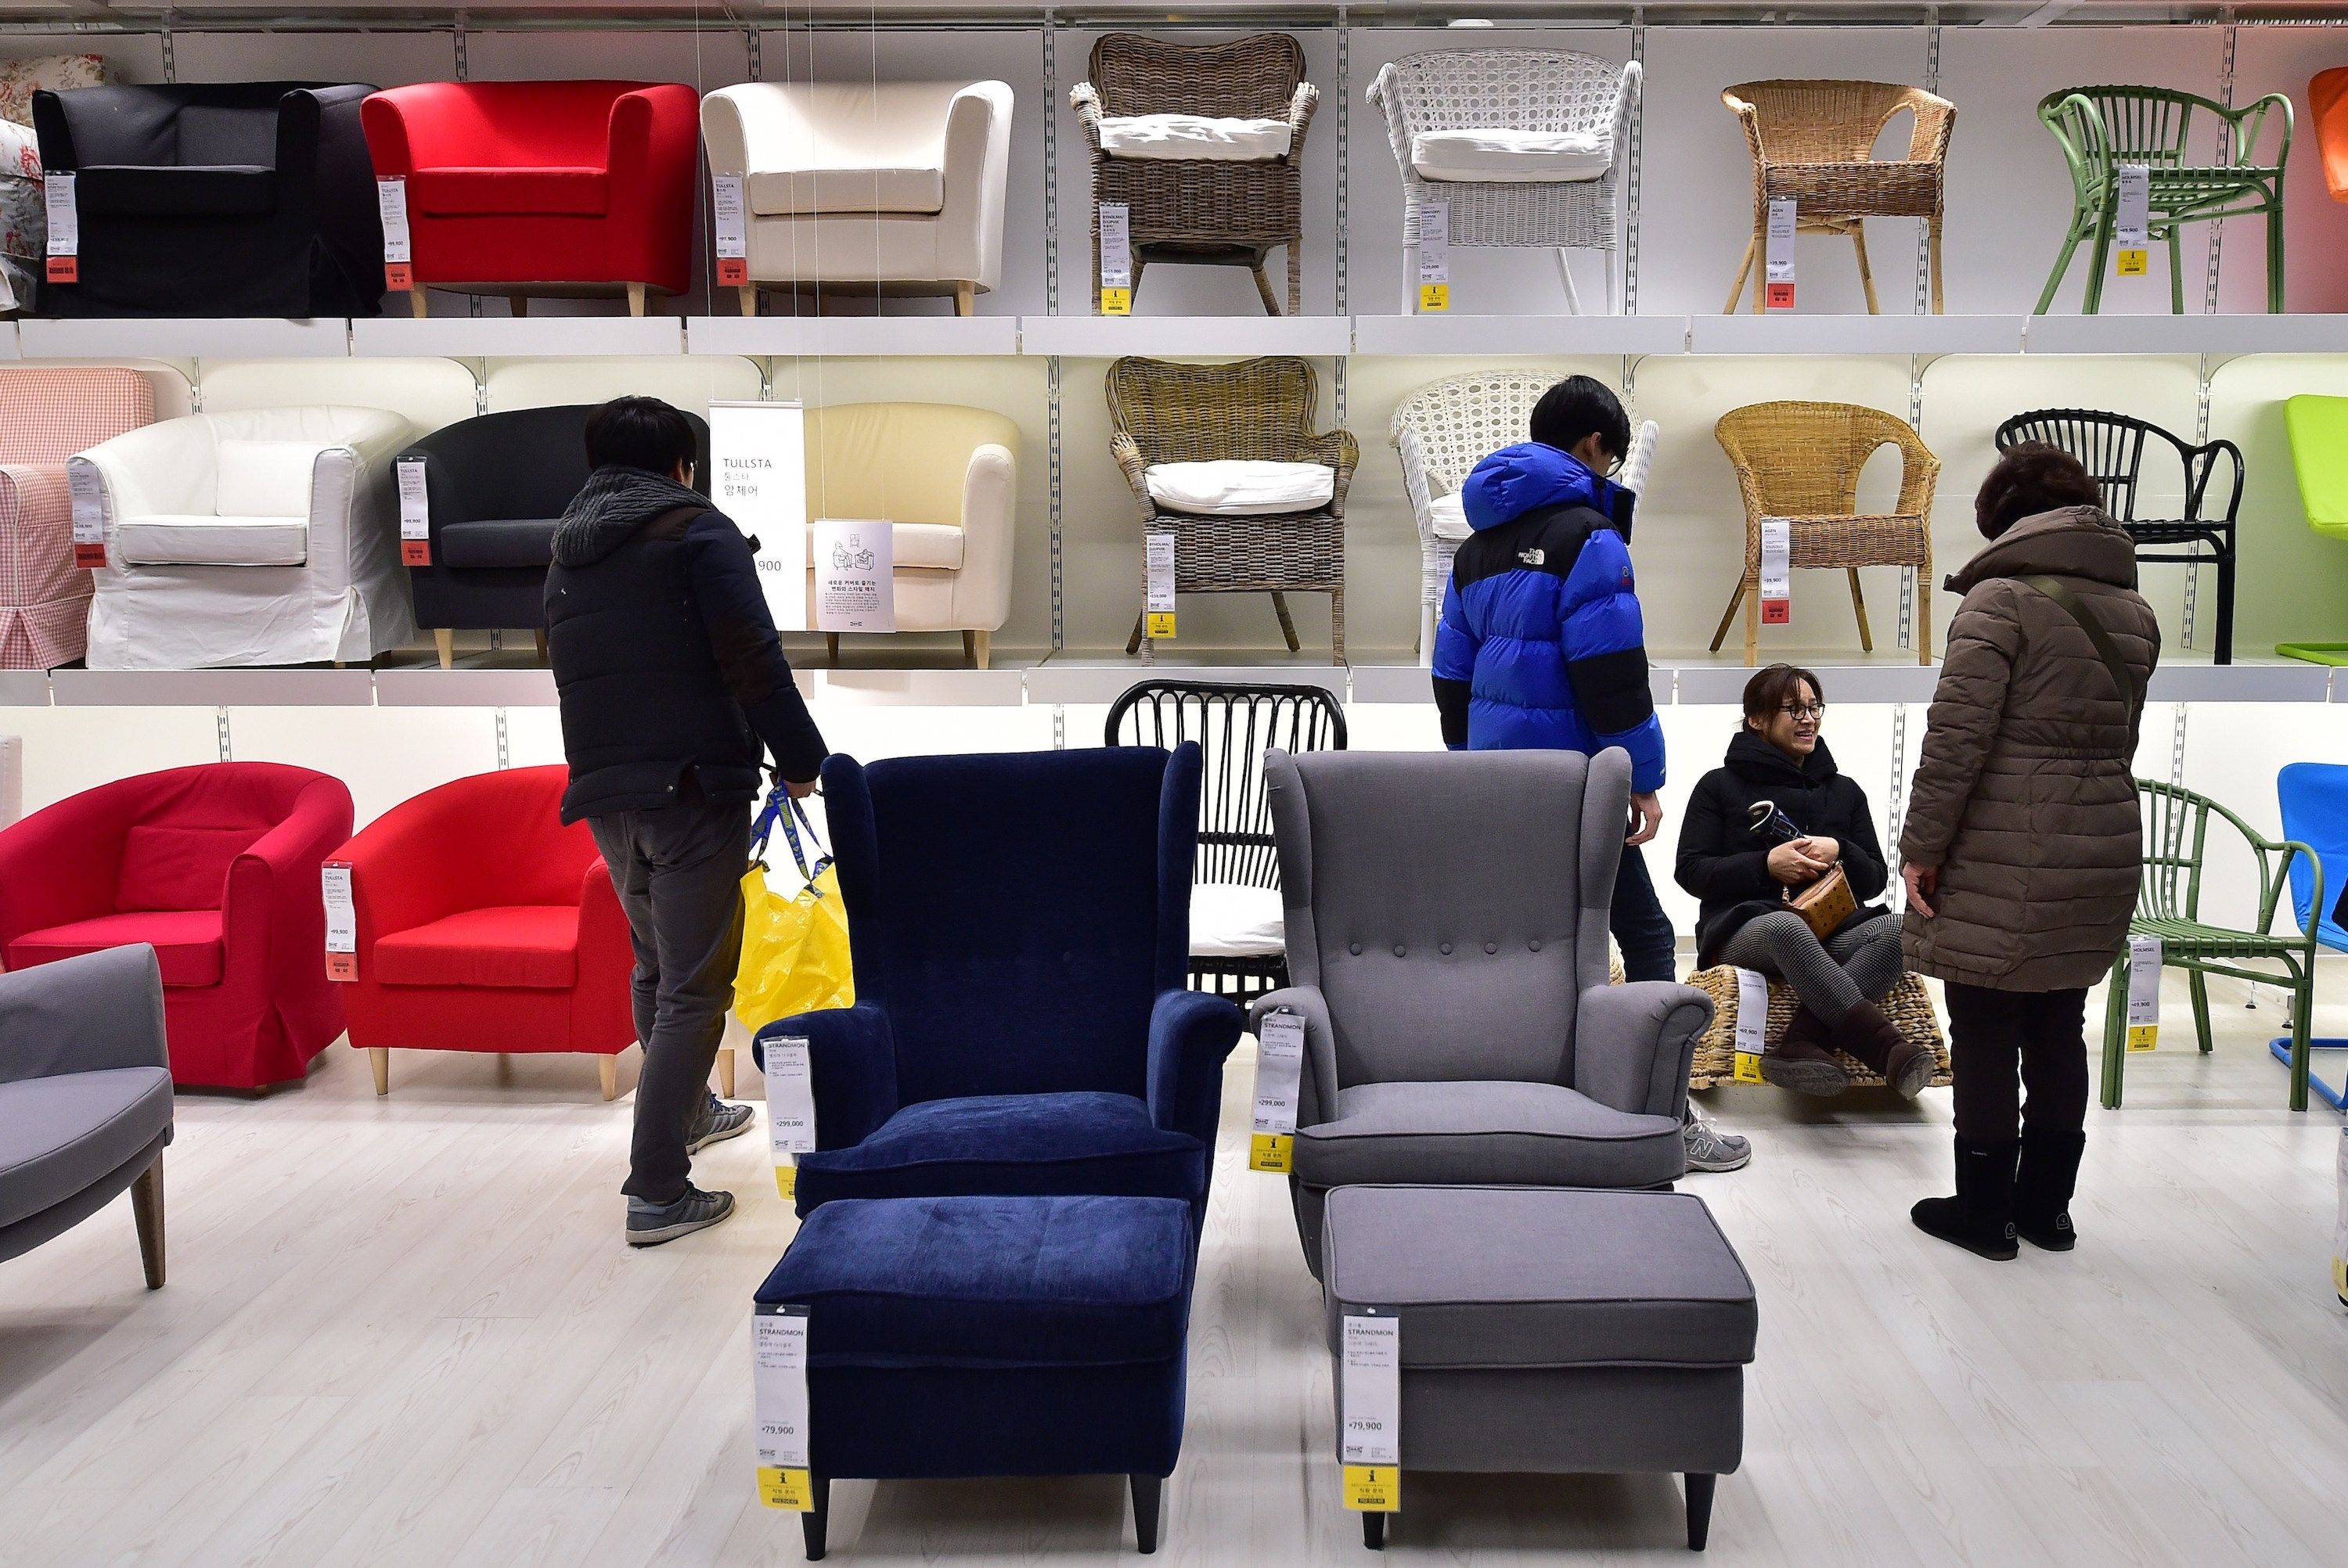 Captivating 10 Fascinating Facts About IKEA   Interesting Things About IKEA Furniture